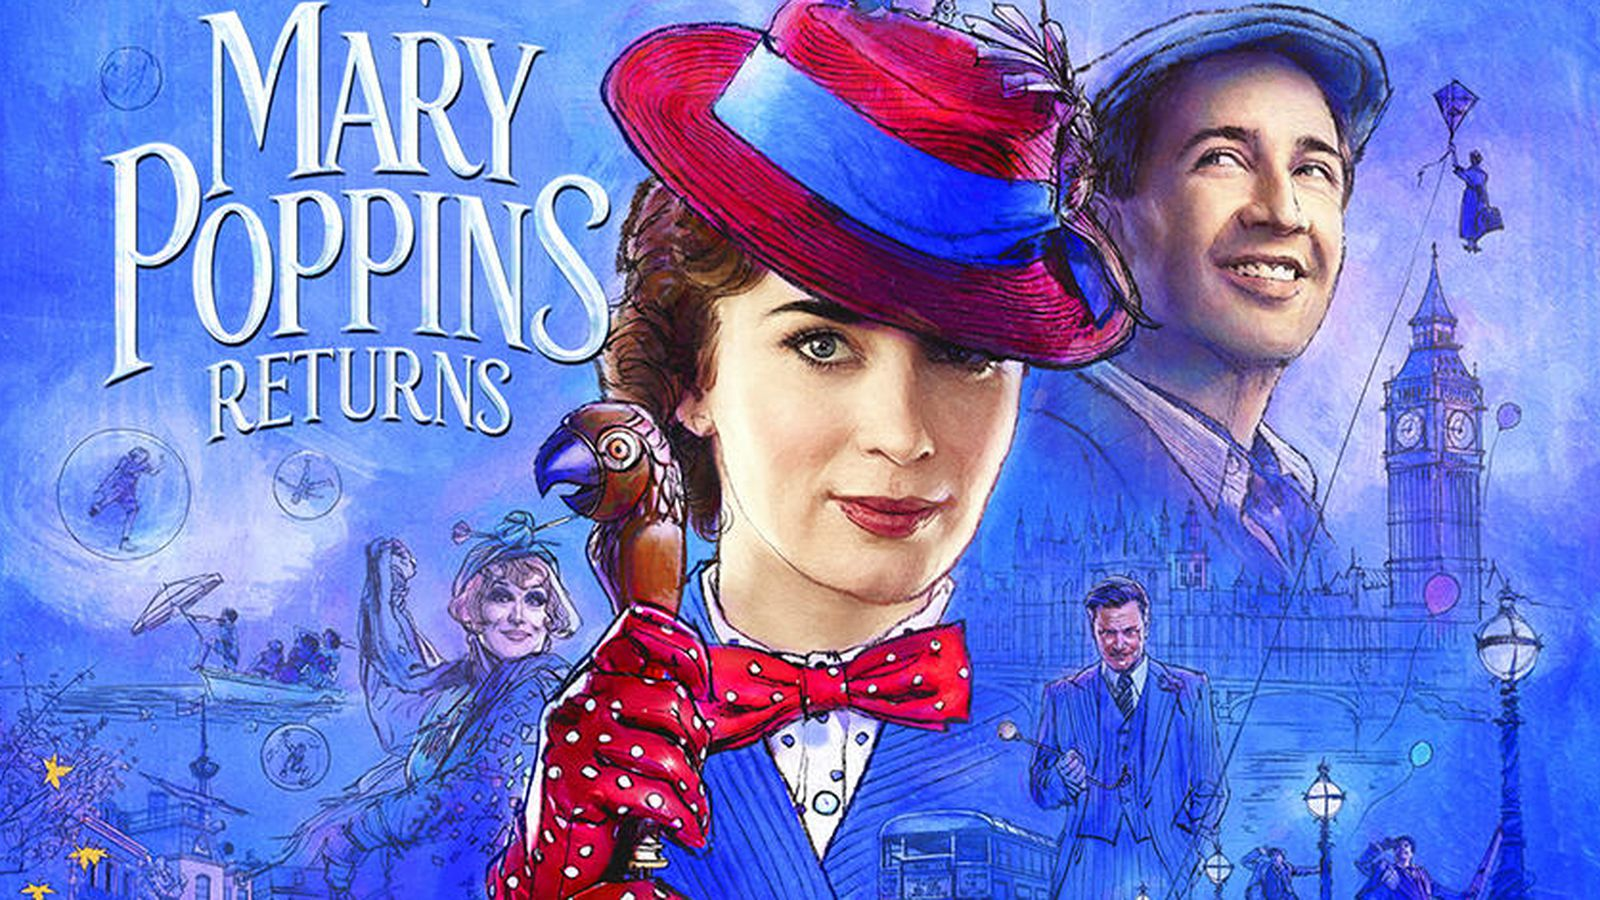 mary-poppins-returns-poster-emily-blunt.